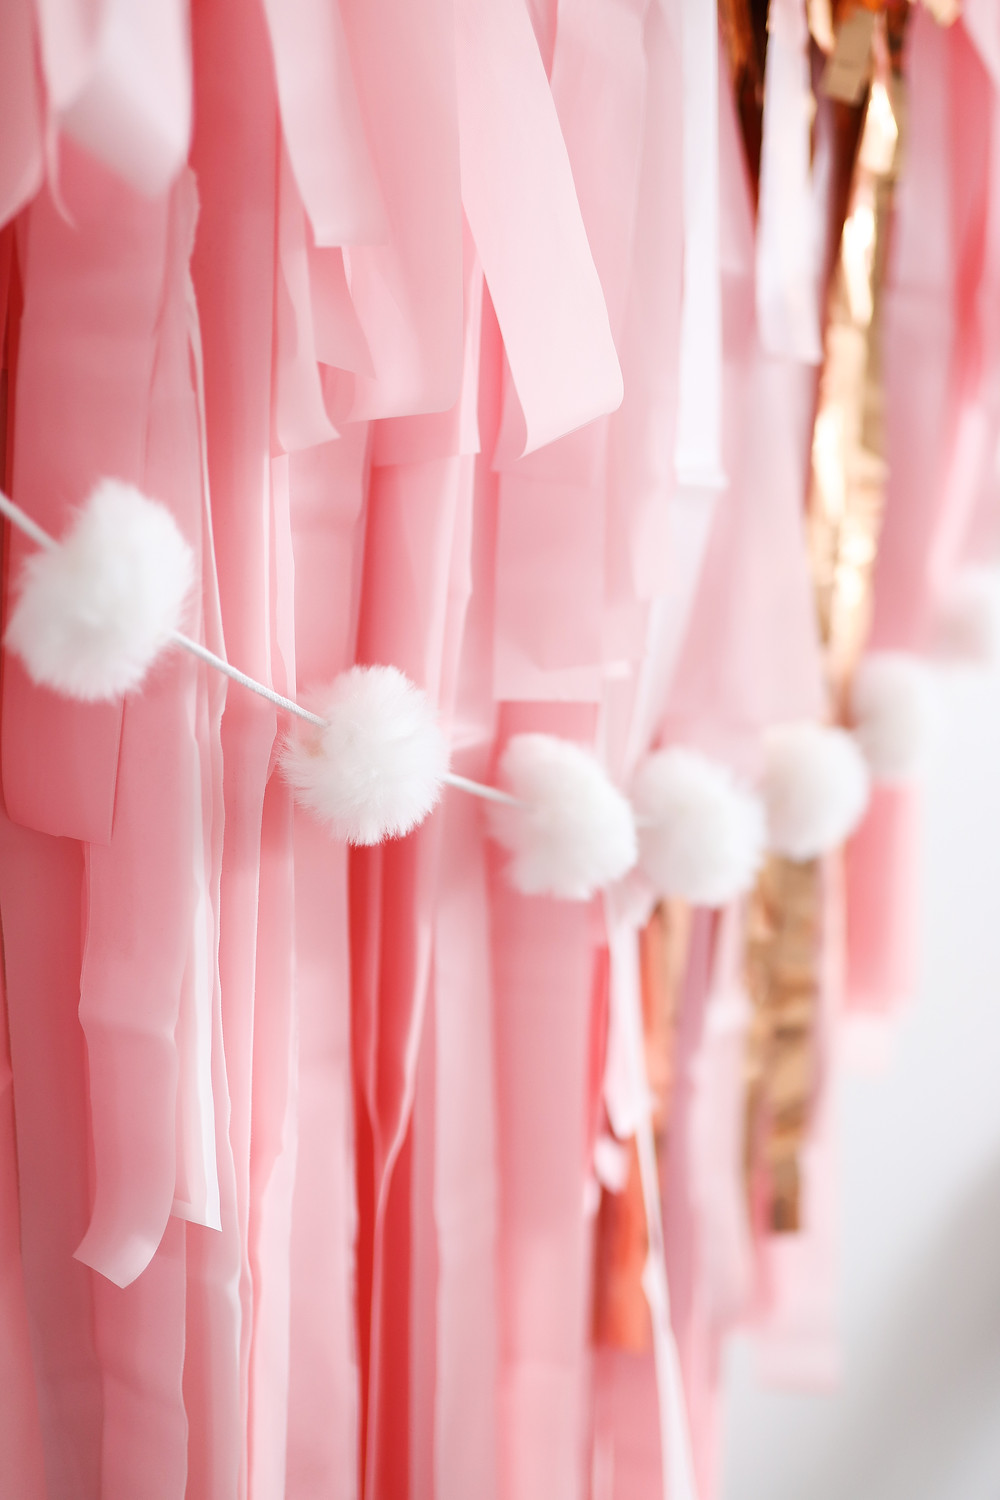 A pink and gold paper party banner with white pom poms hanging on the wall for a birthday celebration.